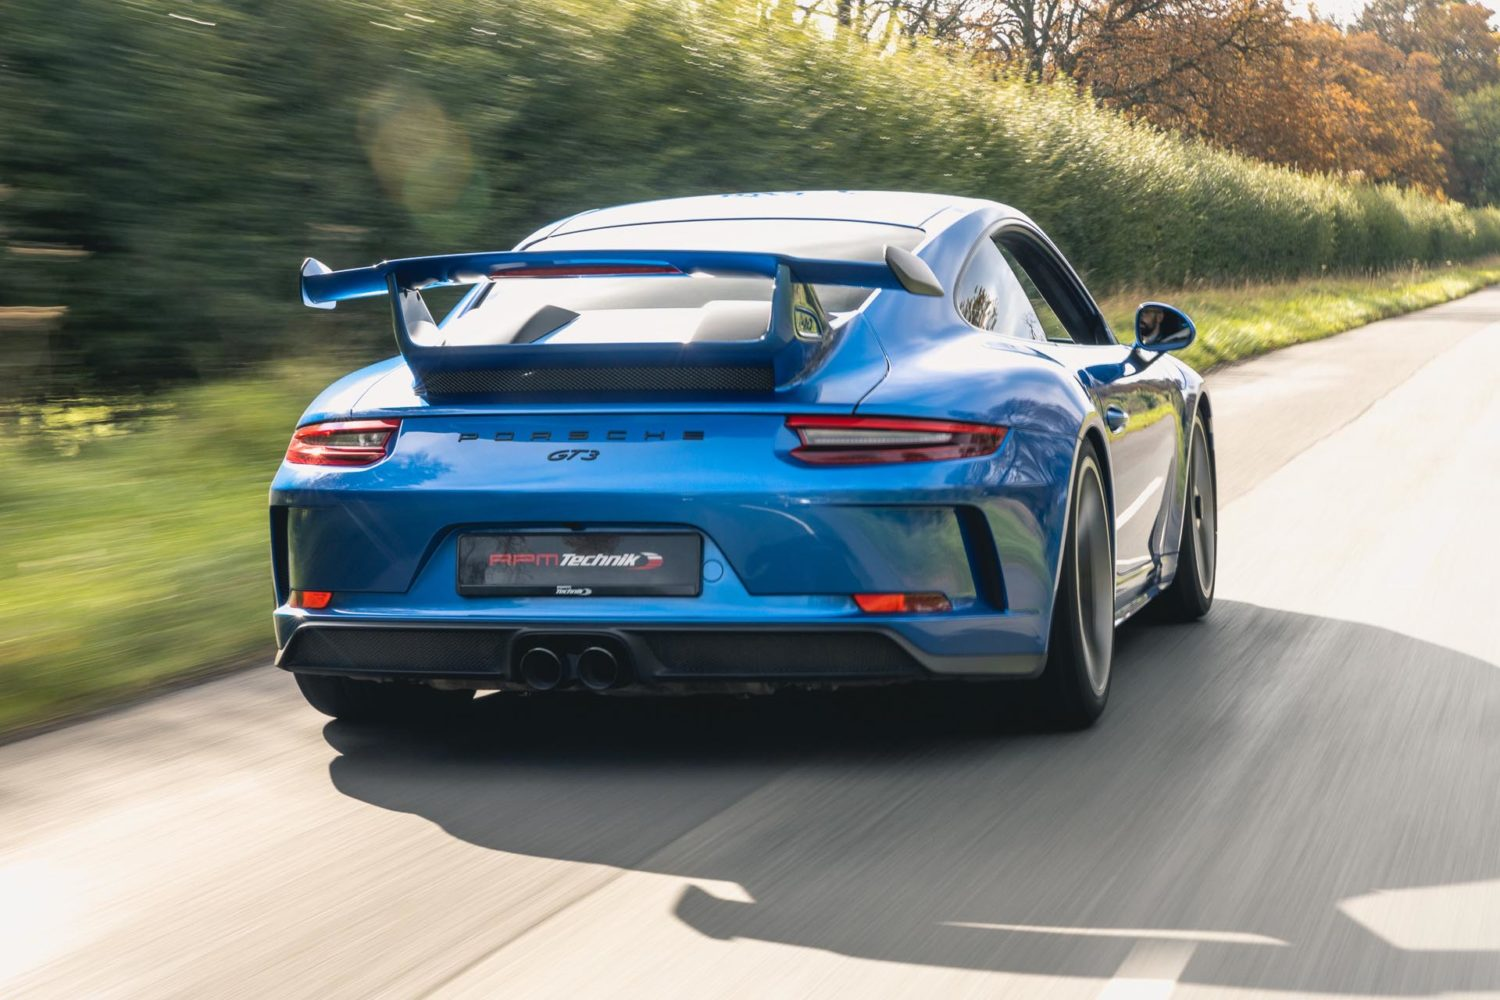 991.2 gt3 driving